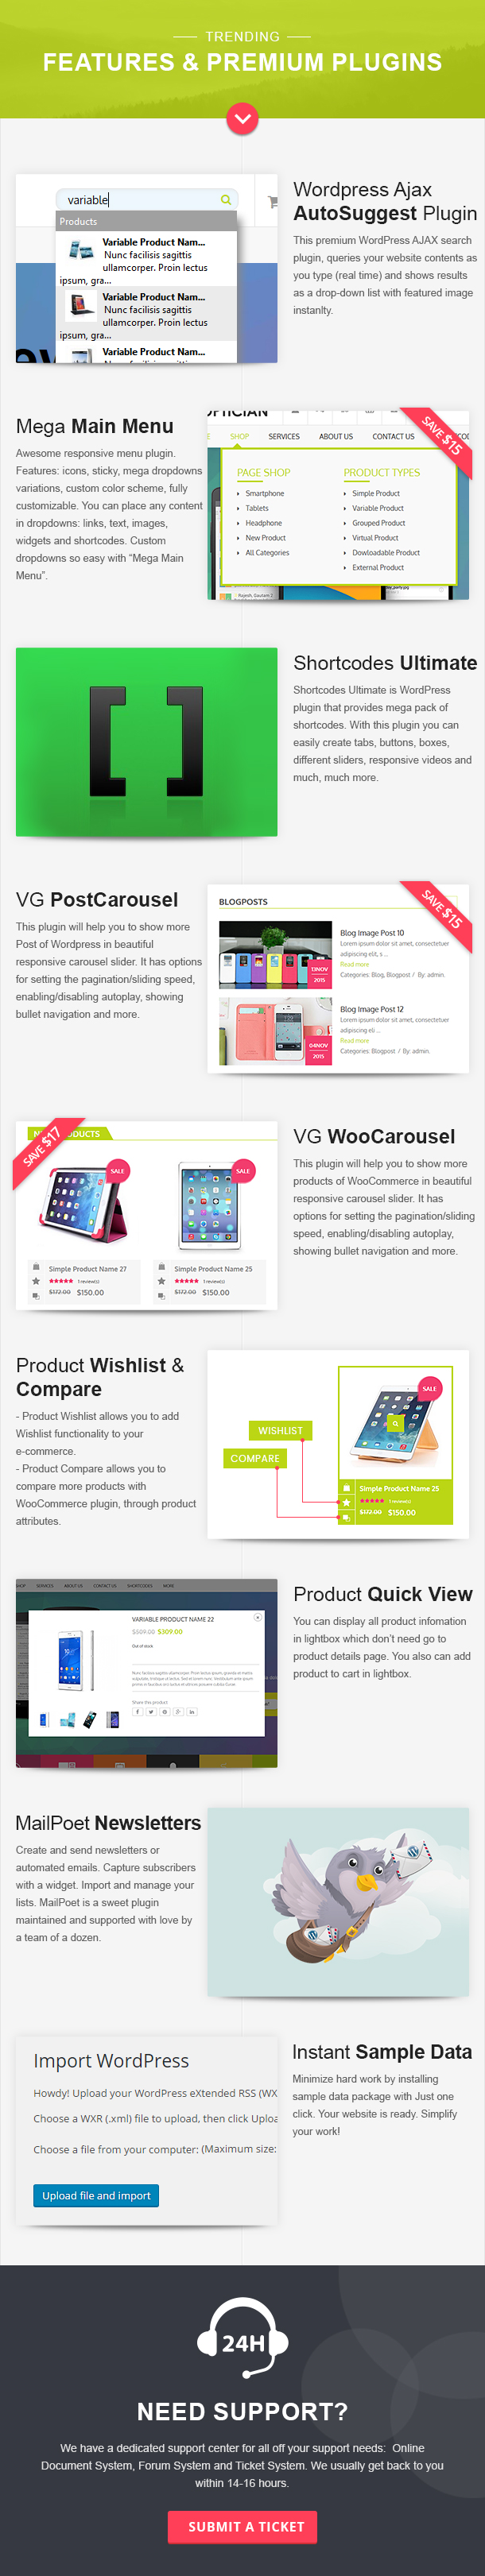 VG Optician - Responsive eCommerce WordPress Theme - 16